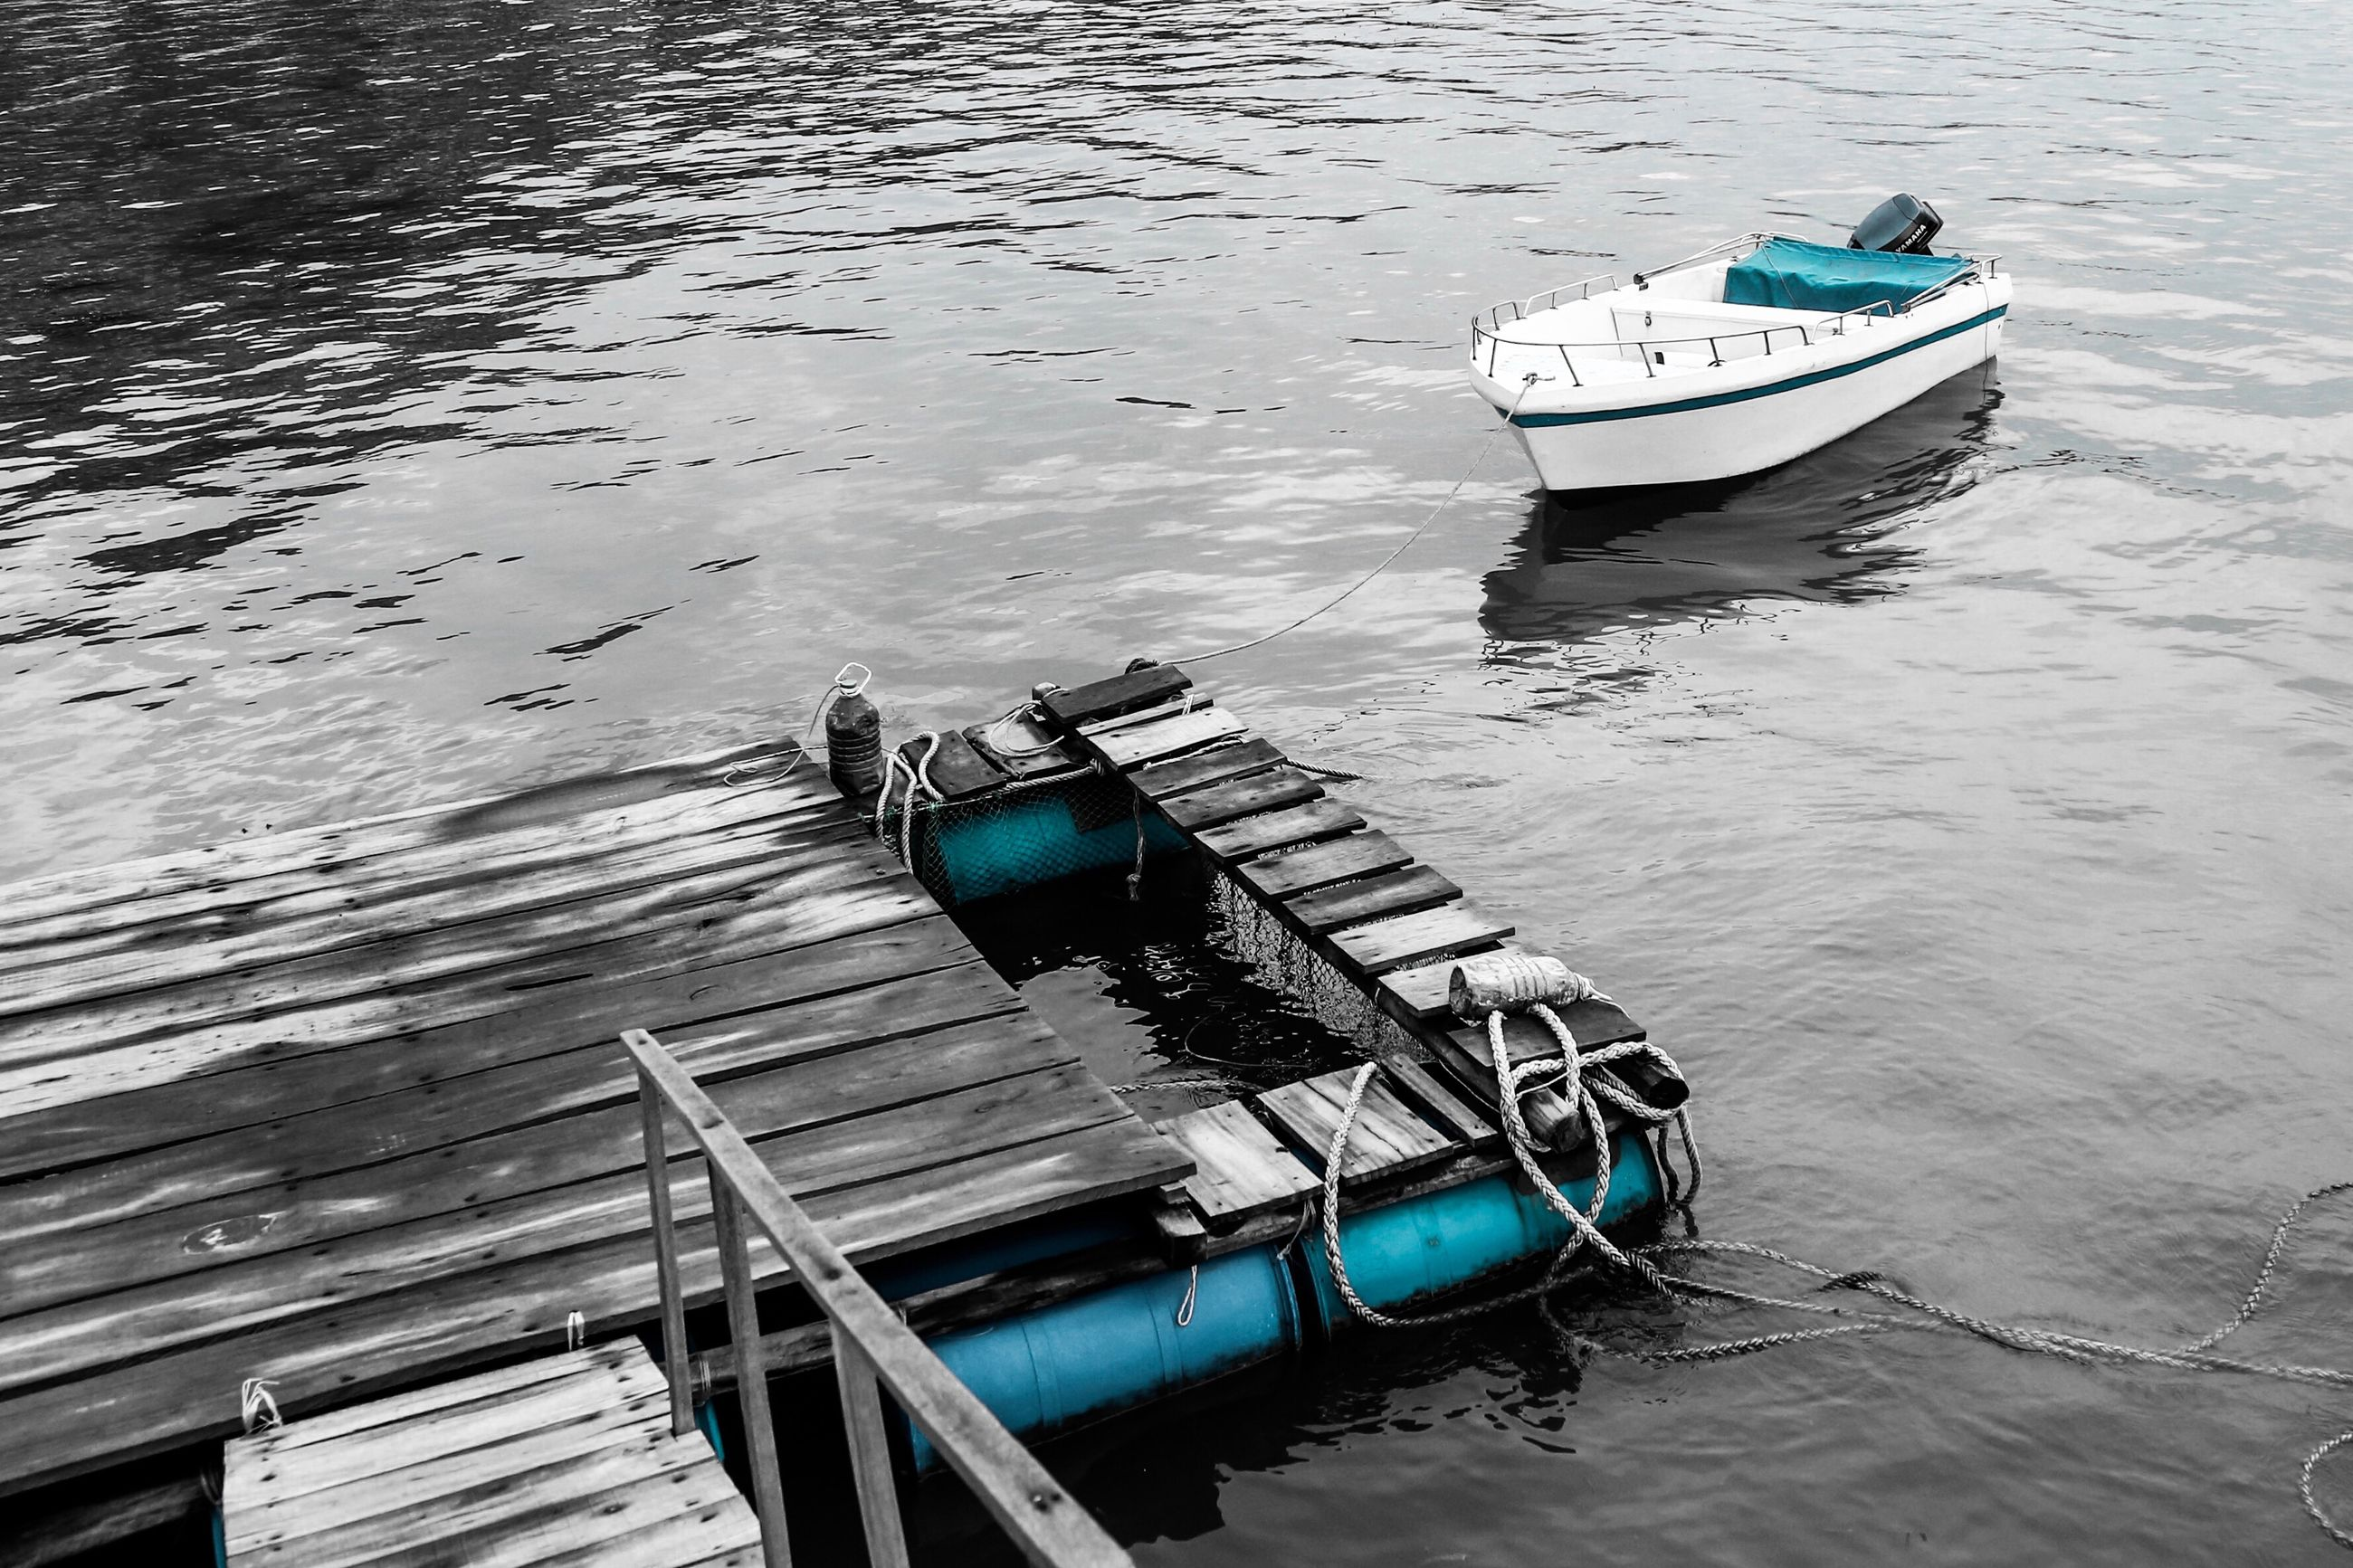 nautical vessel, water, transportation, high angle view, mode of transport, moored, day, outdoors, nature, no people